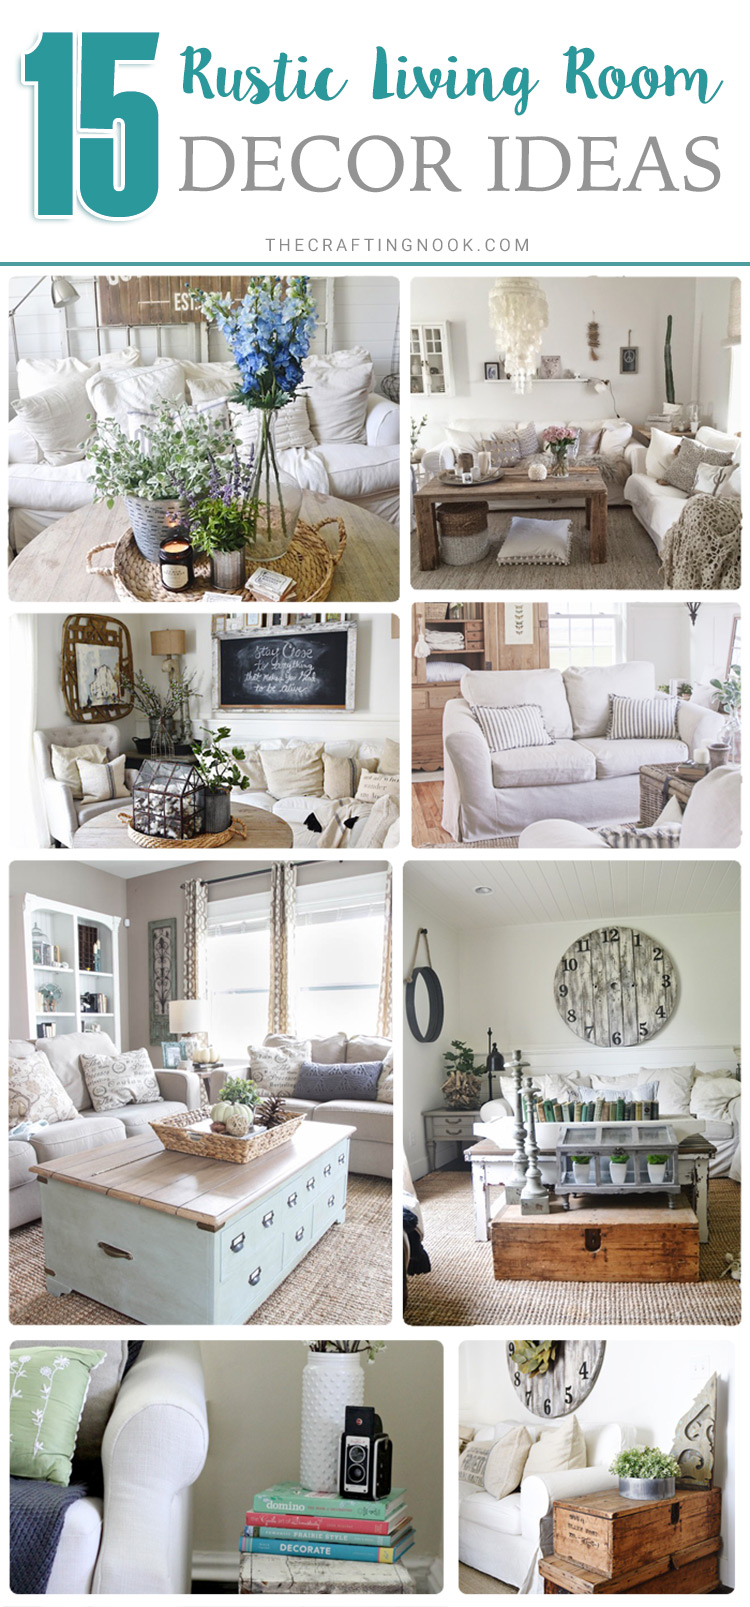 15 Cozy Rustic Living Room Decor Ideas The Crafting Nook